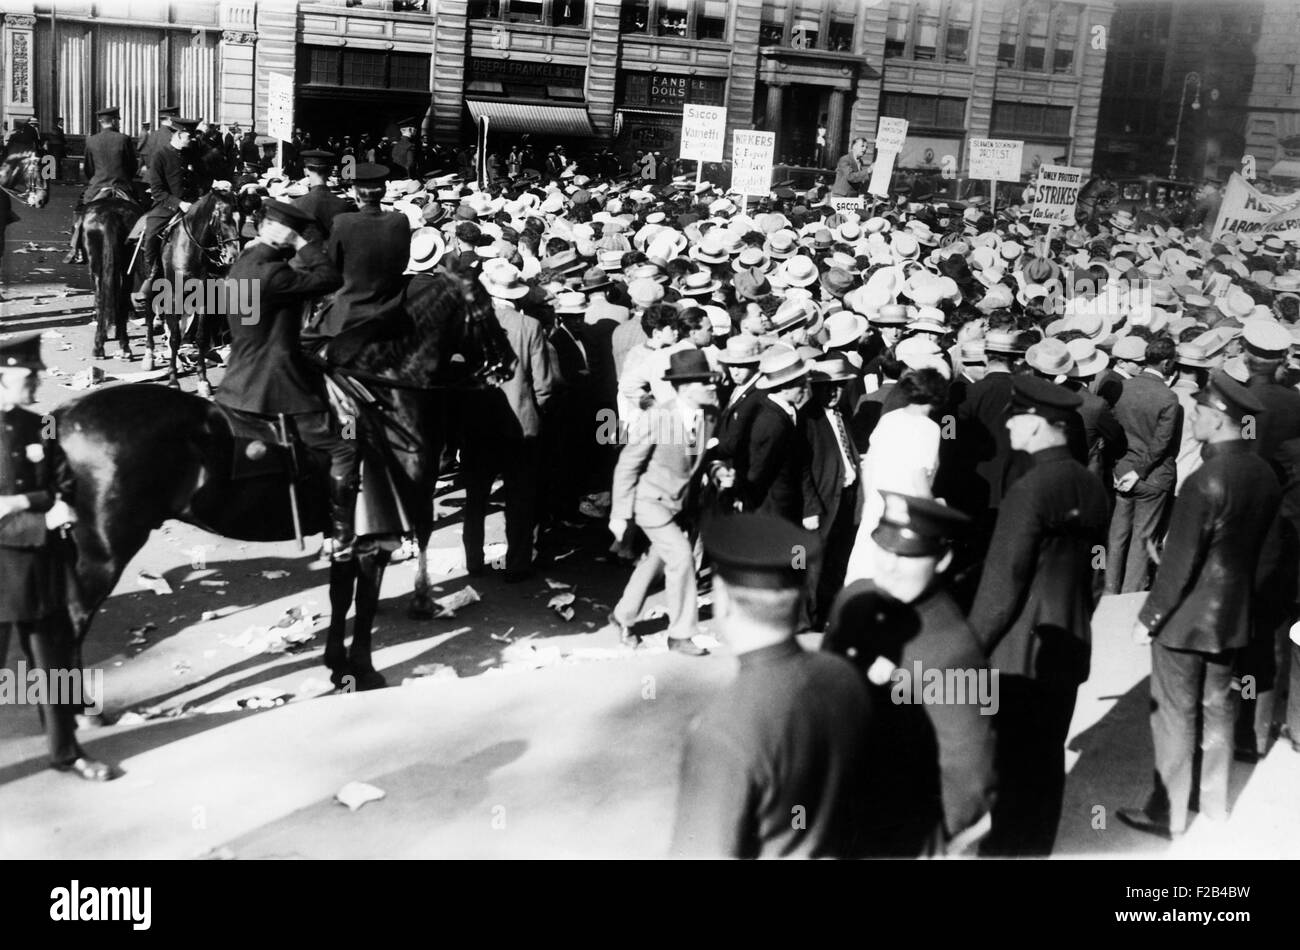 Mounted police forcing their horses to disperse the great horde of socialists at Union Square. They were attending - Stock Image